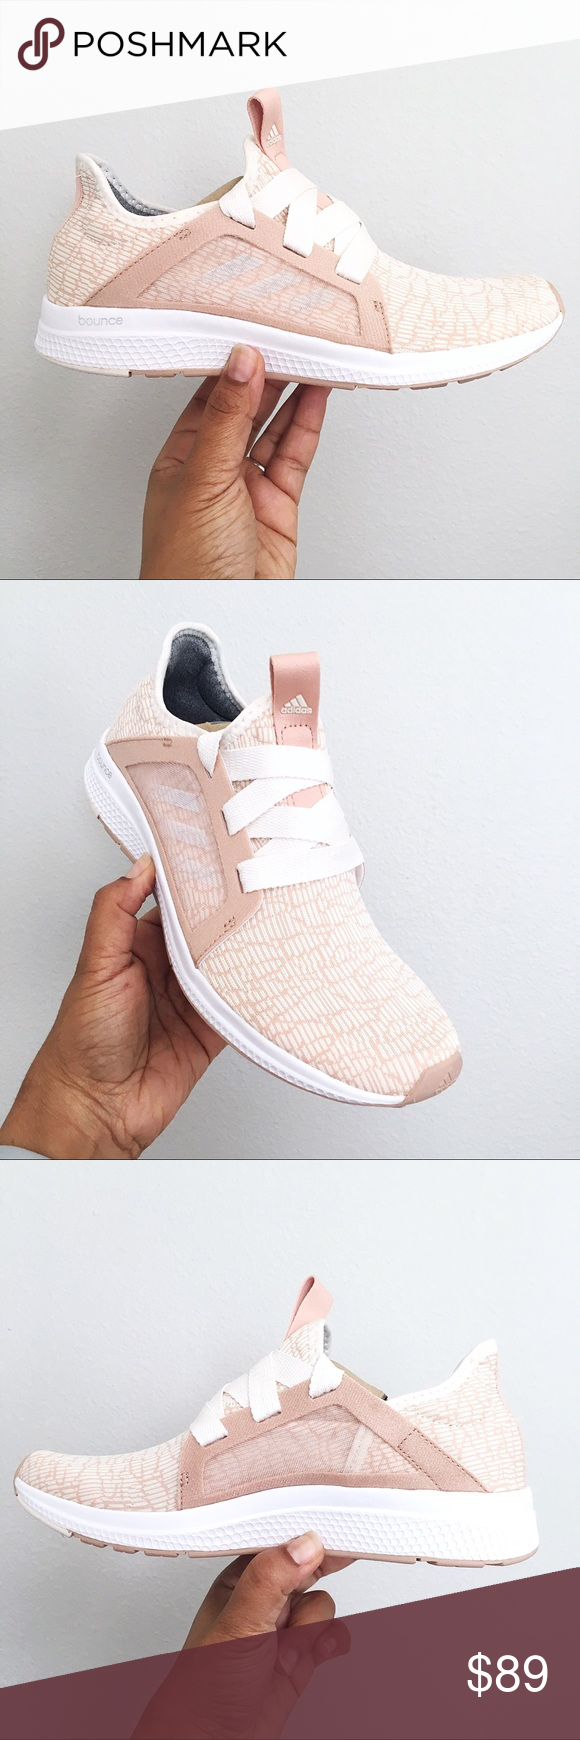 75355f8c6166f Adidas Edge Lux Bounce Women s Size 8 Brand new in Bow with Lid - Adidas  CQ1239 Cloud Beige Light - Mesh overlay side walls - Breathable Upper -  Snug fit ...